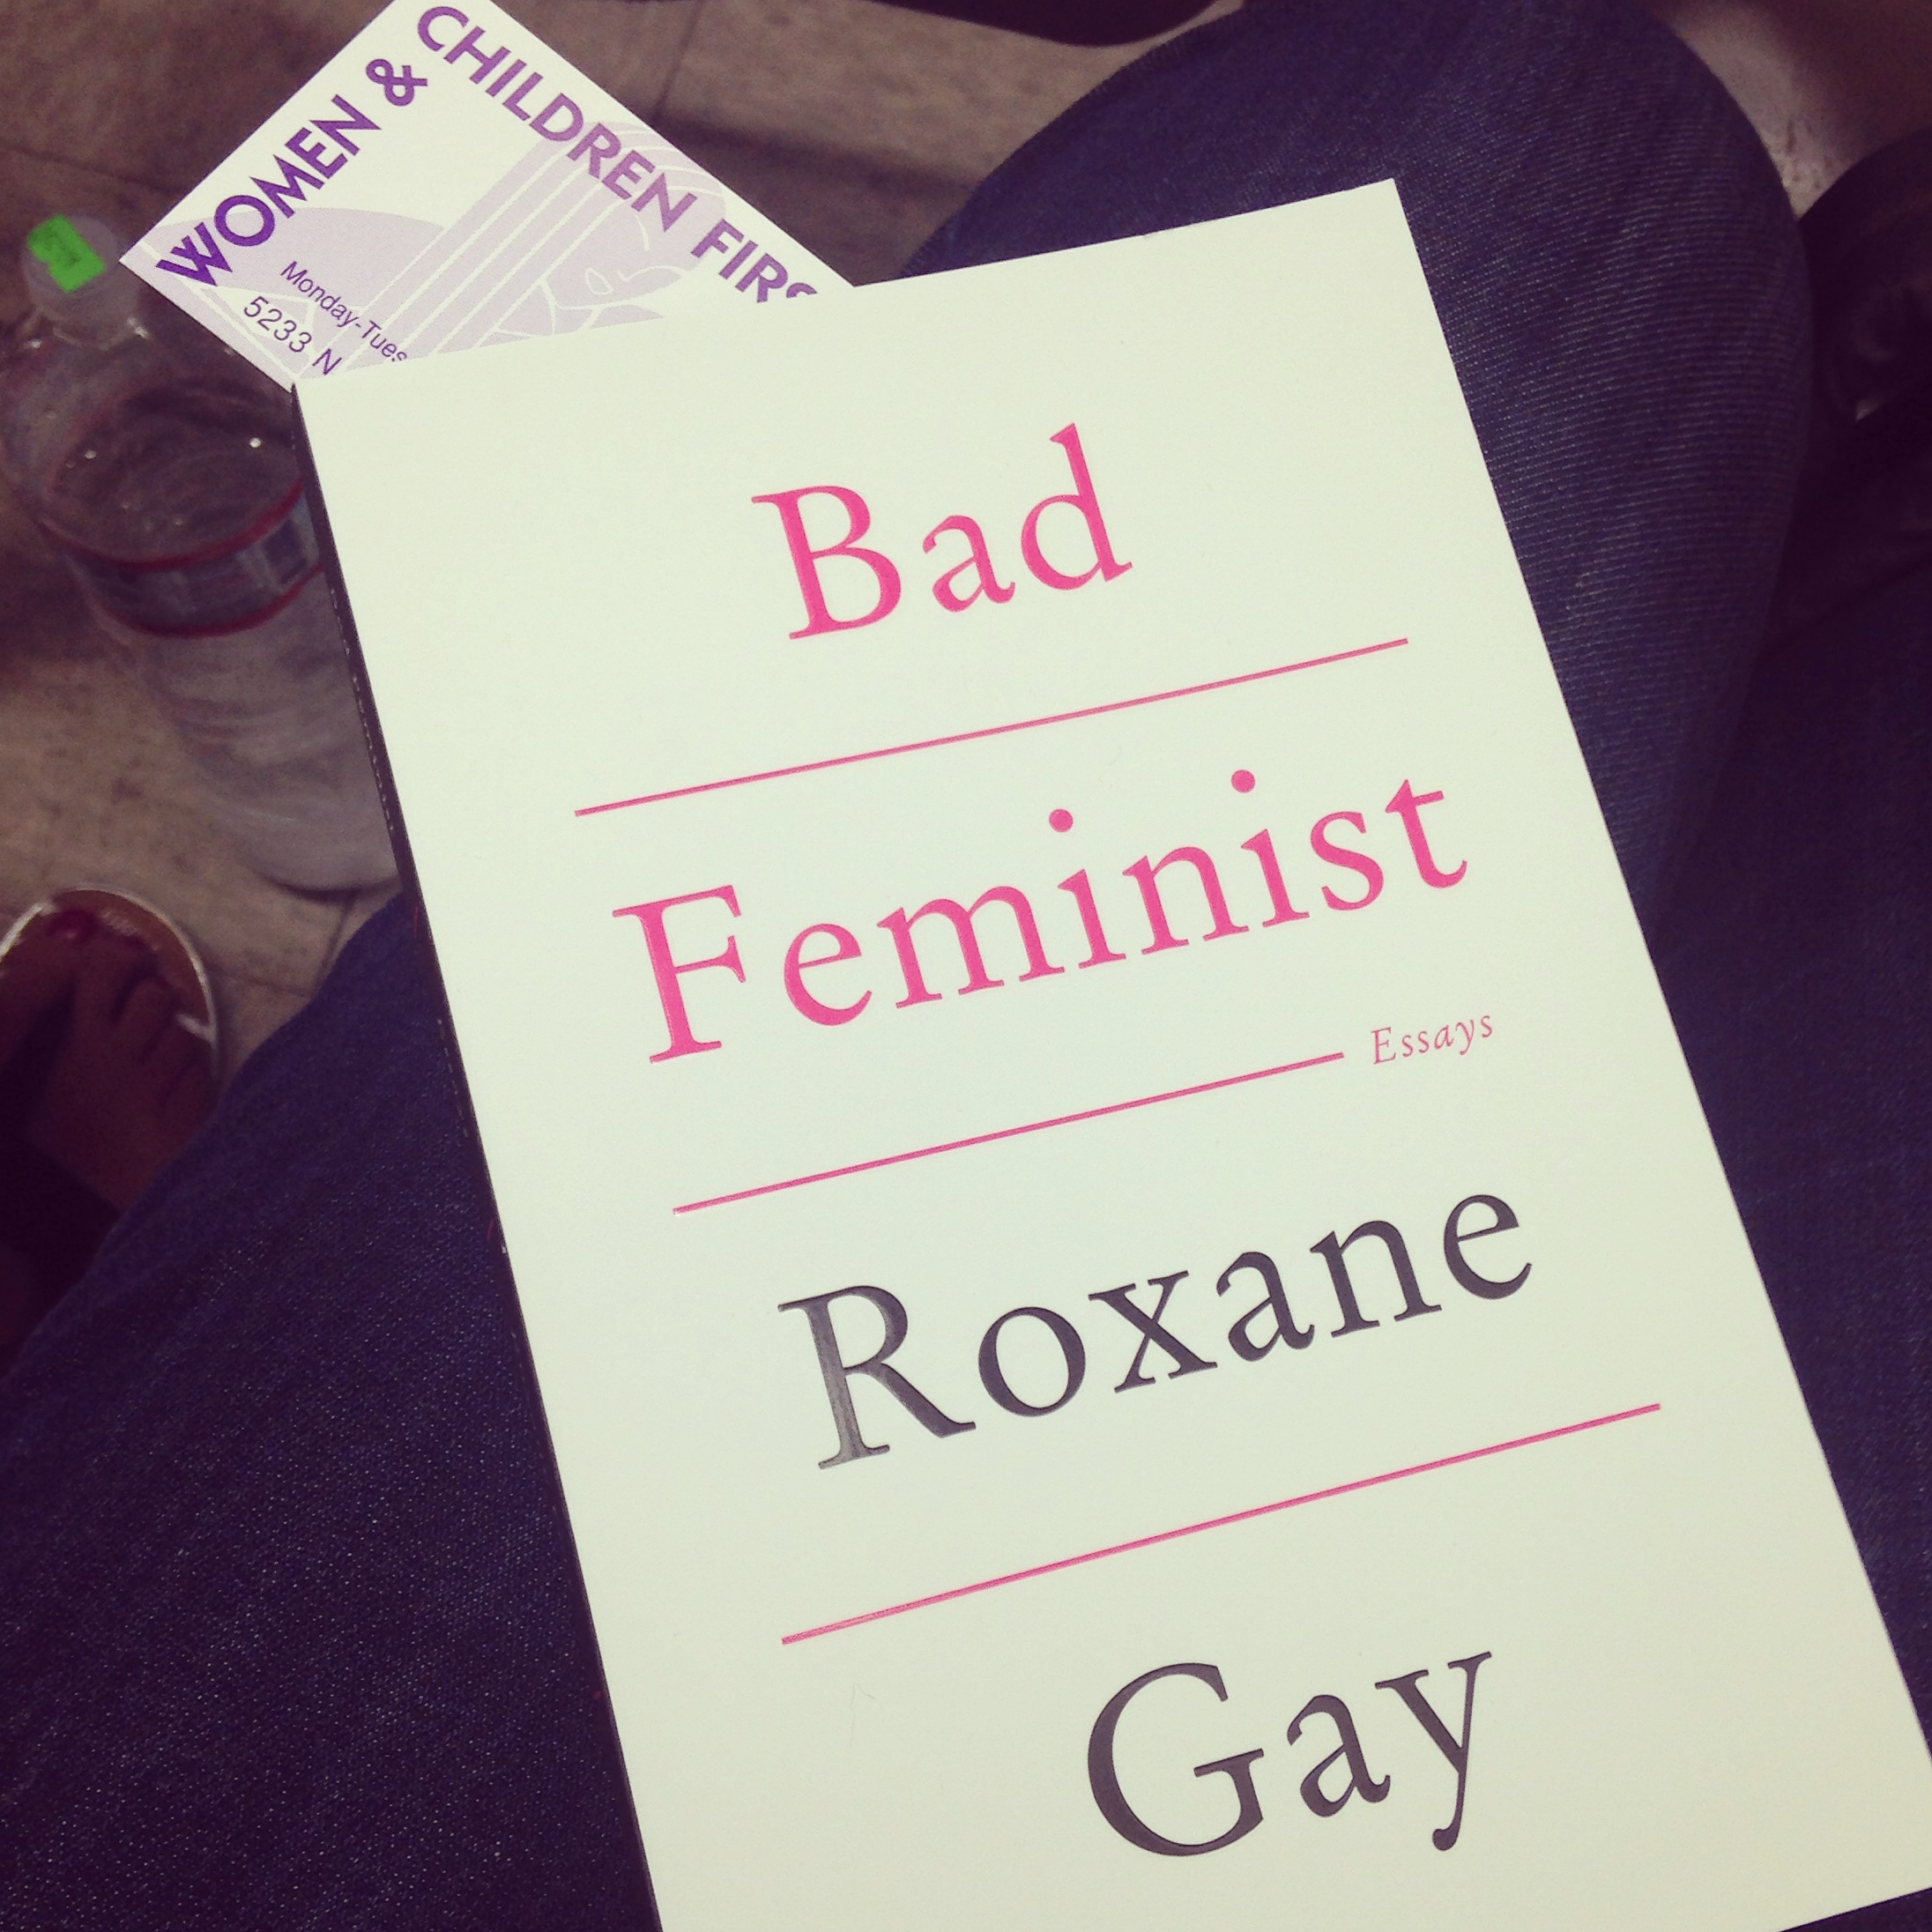 roxane gay on ldquo bad feminism rdquo beyonc atilde copy blogging bad feminist ldquo